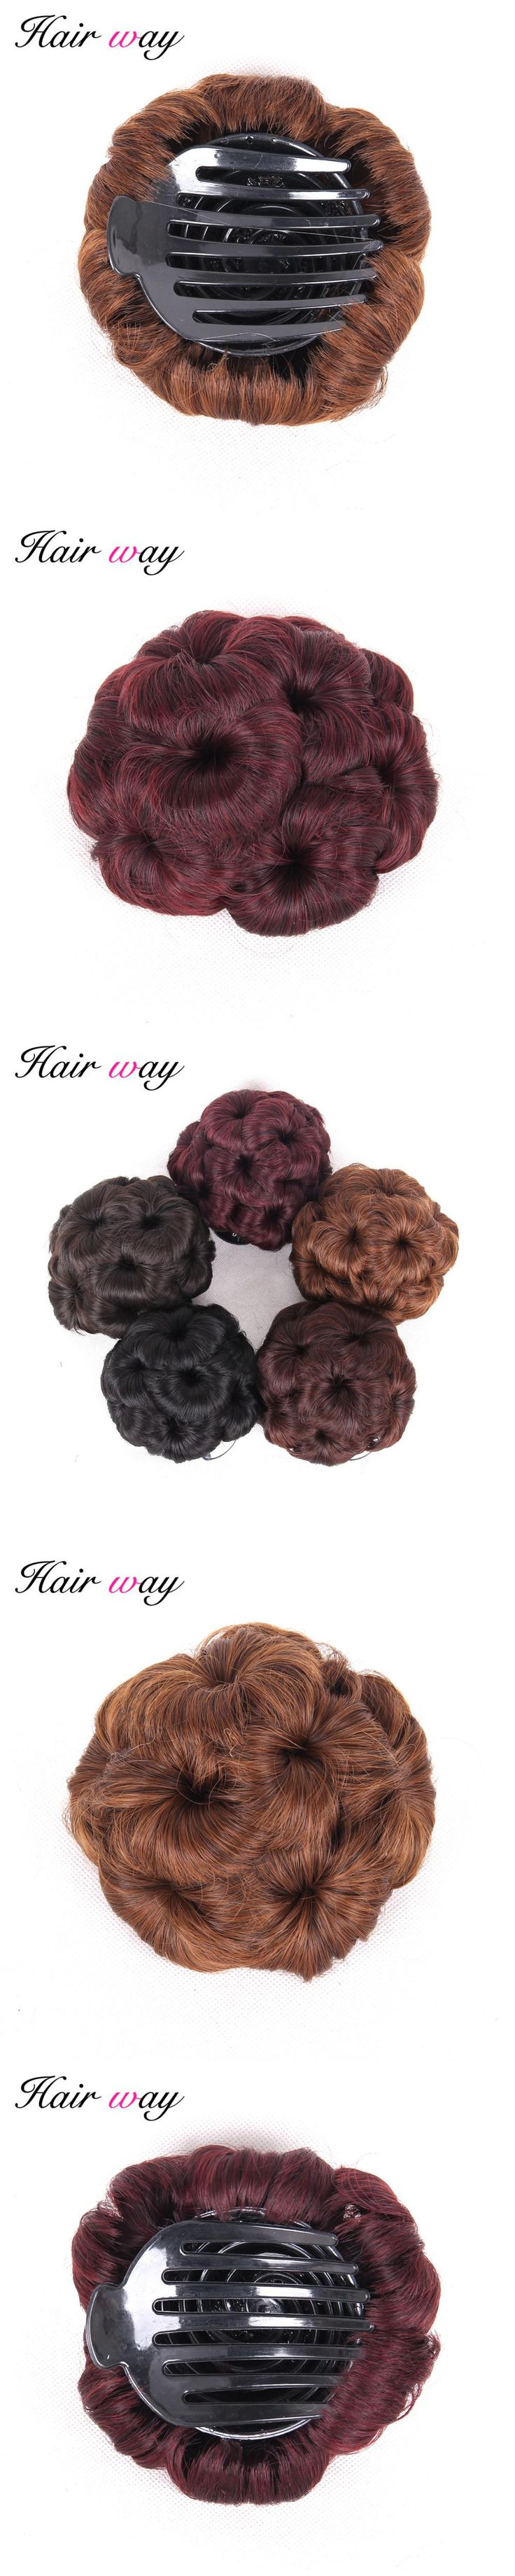 Hair Way Synthetic Curly Chignon Bun Hairpiece For Women 9 Flowers Roller Clip in Fake Hair Accessories High Temperature Fiber